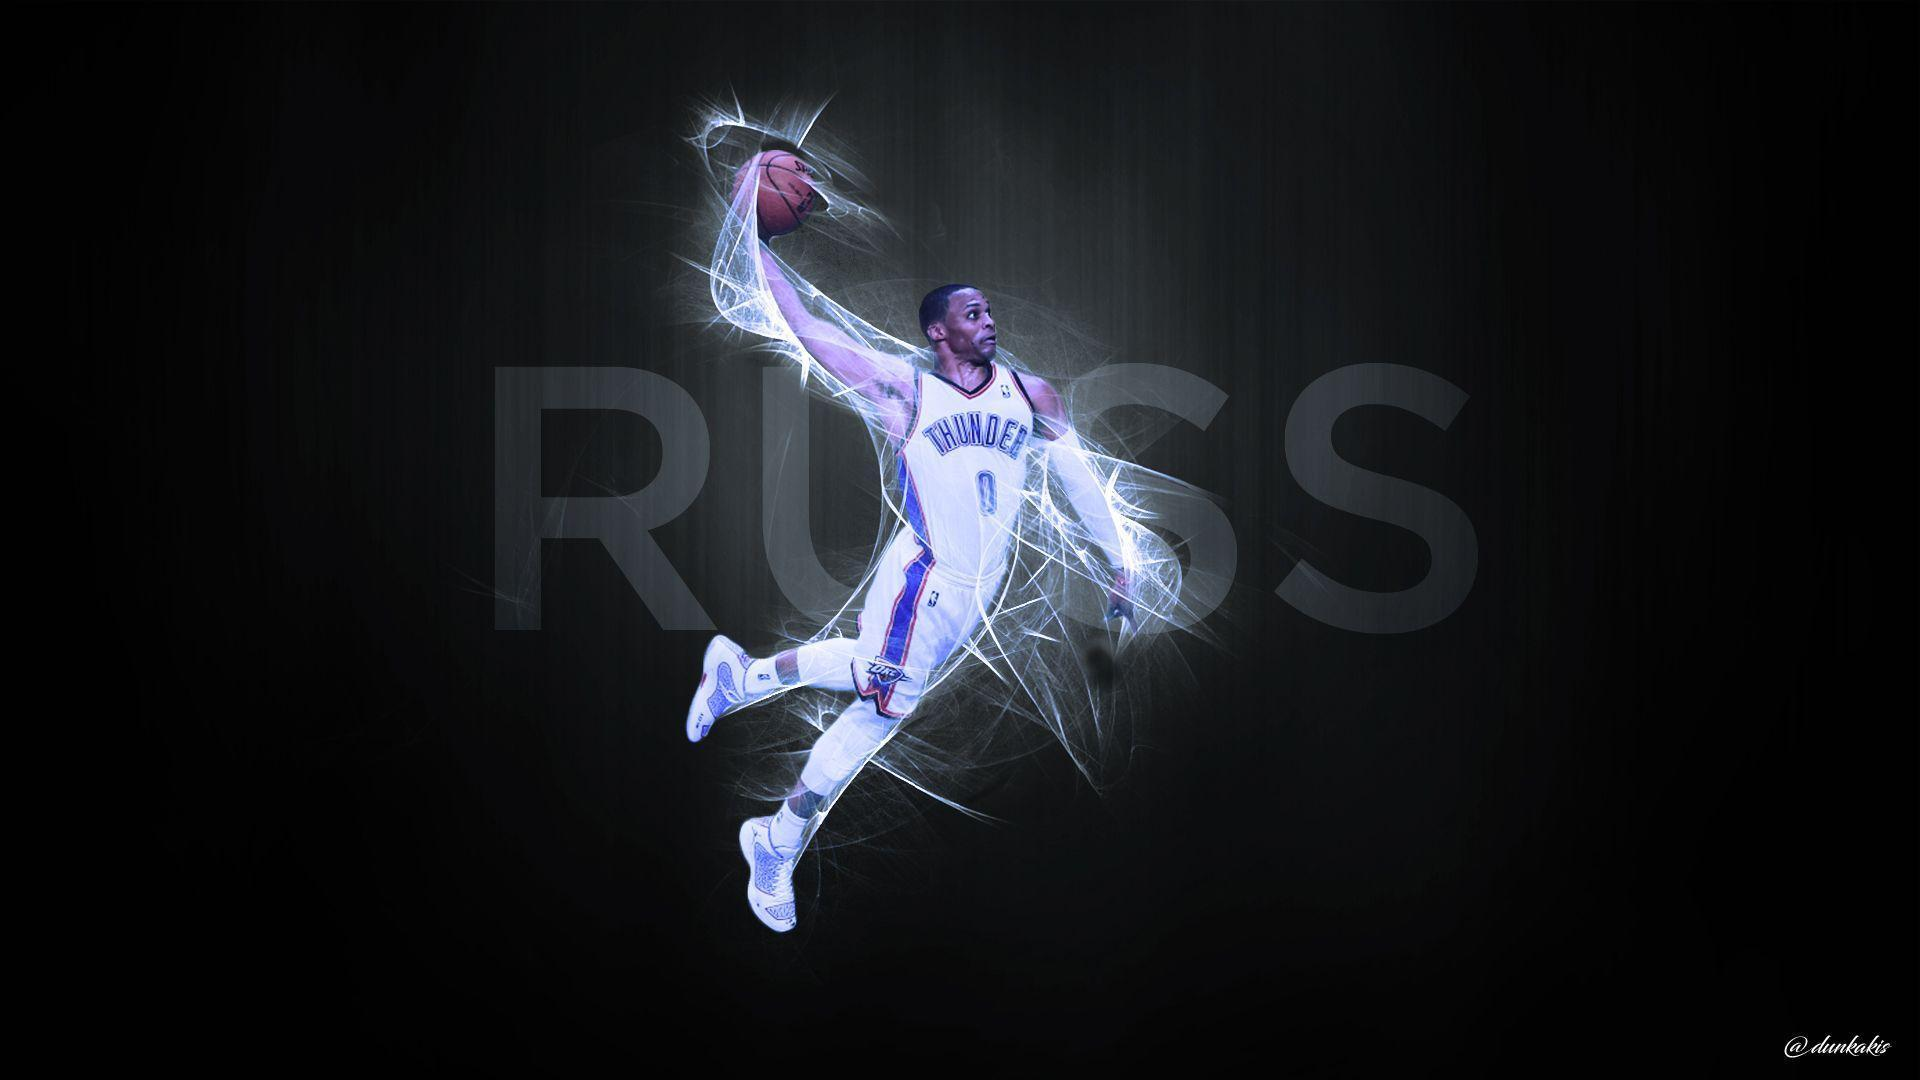 Russell Westbrook Cars >> Russell Westbrook 2017 Wallpapers - Wallpaper Cave